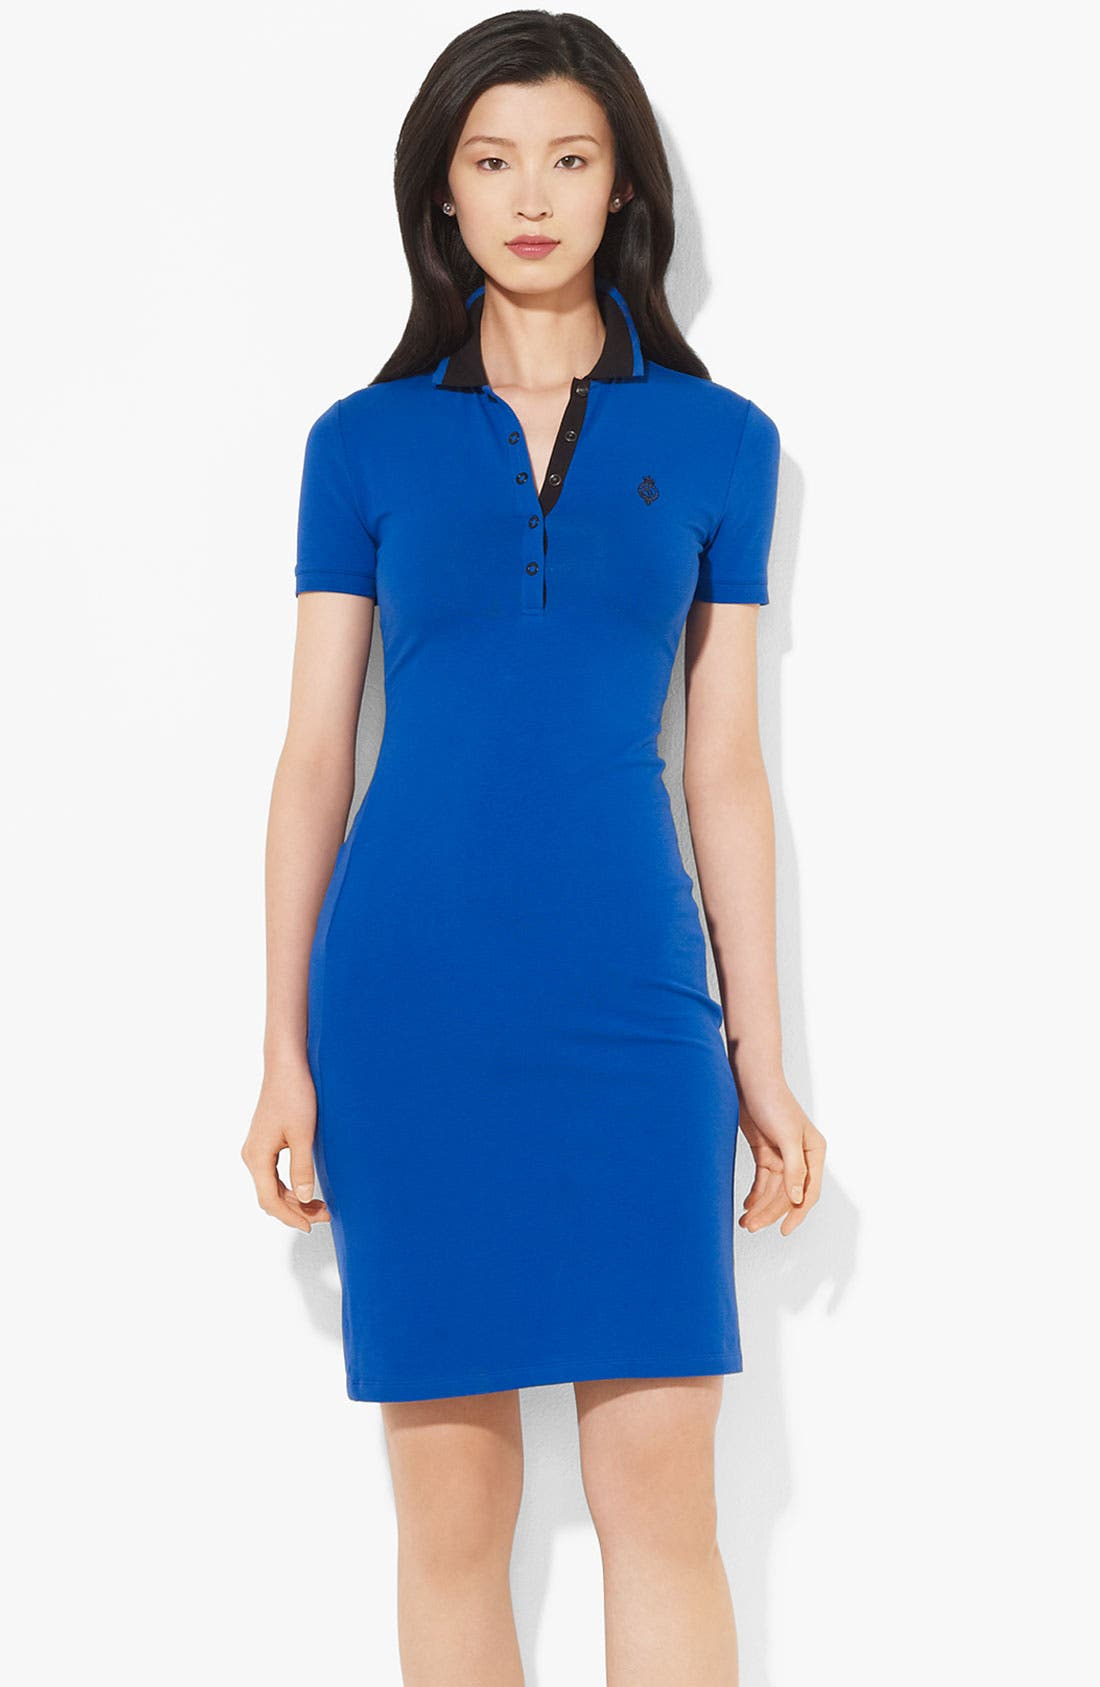 Main Image - Lauren Ralph Lauren Polo Dress